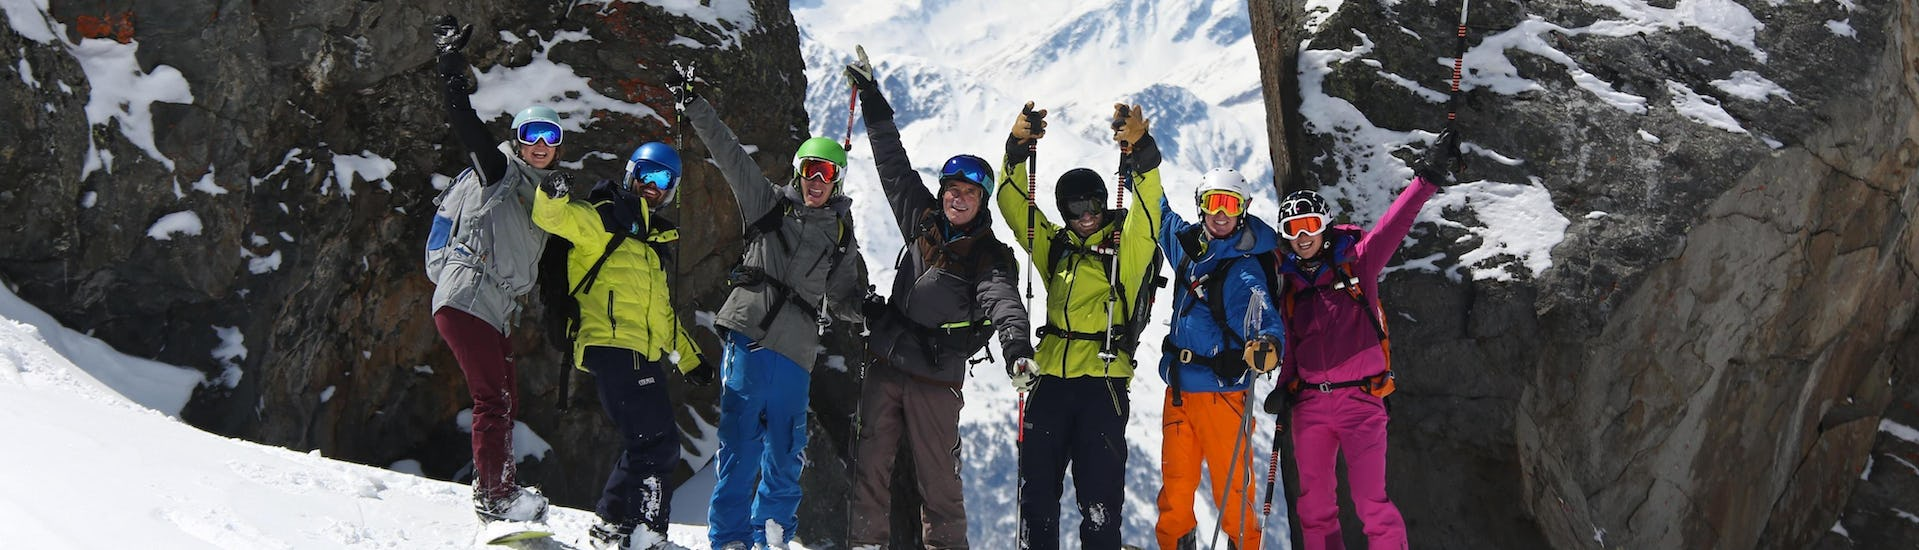 A group of friends are taking a few pictures during the Ski Lessons for Adults - All Levels organised by the ski school Prosneige Val d'Isère.